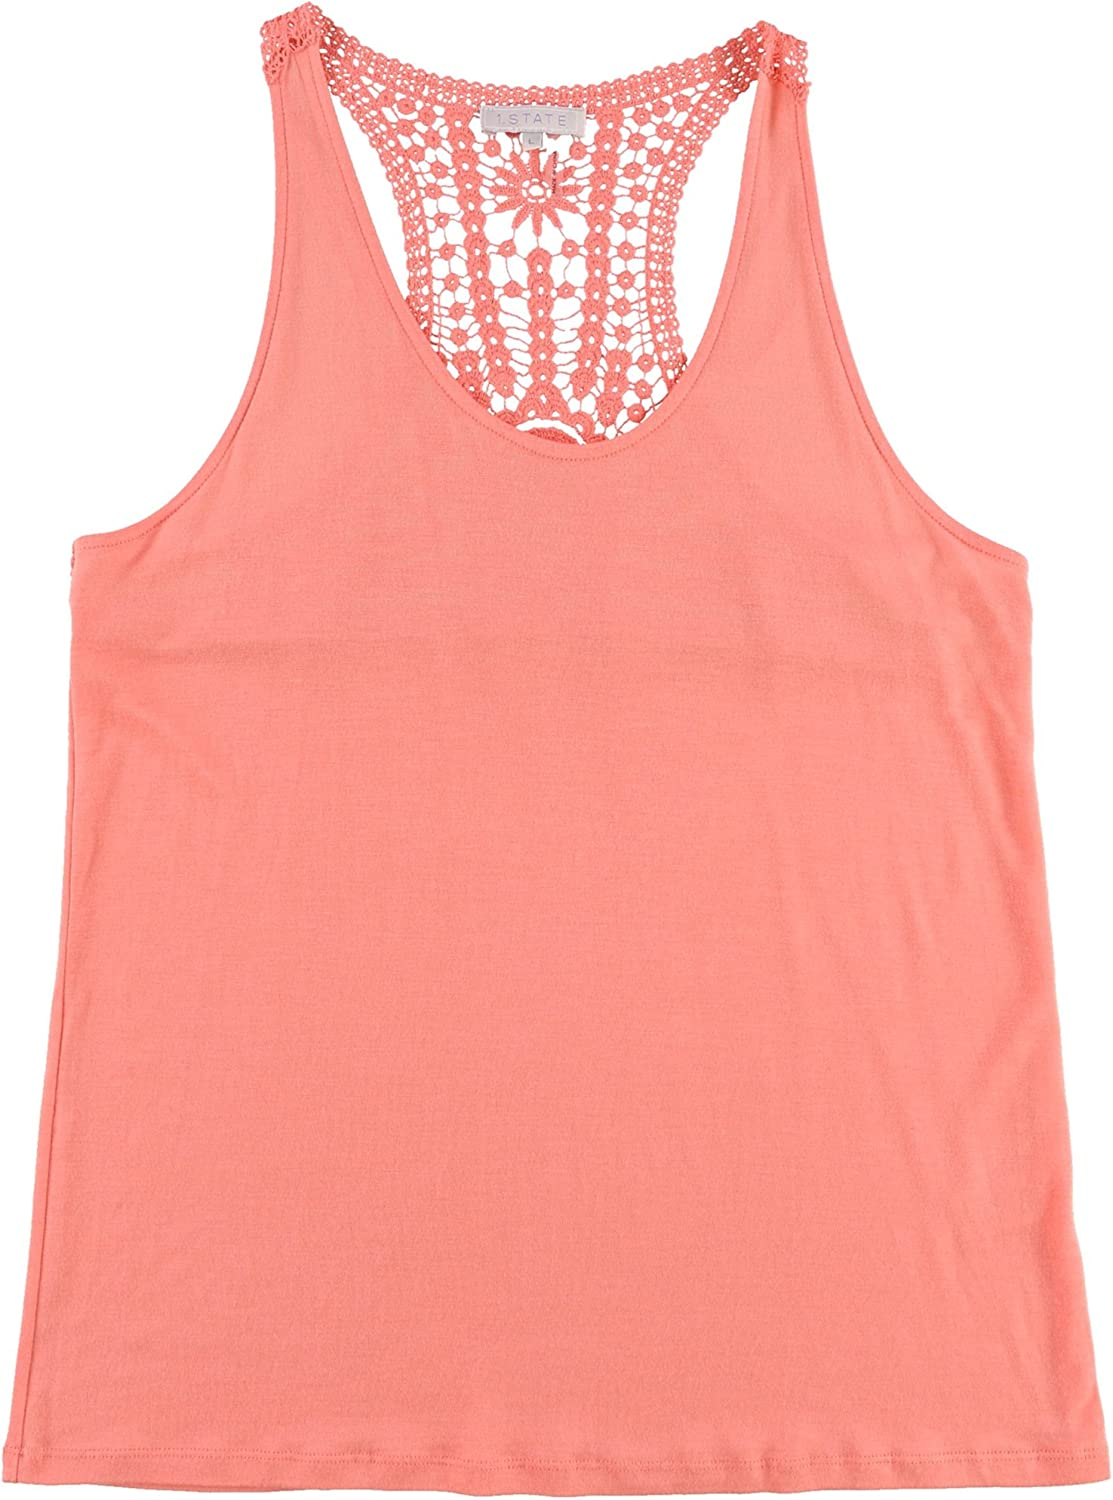 1.State Womens Lace Knit Blouse